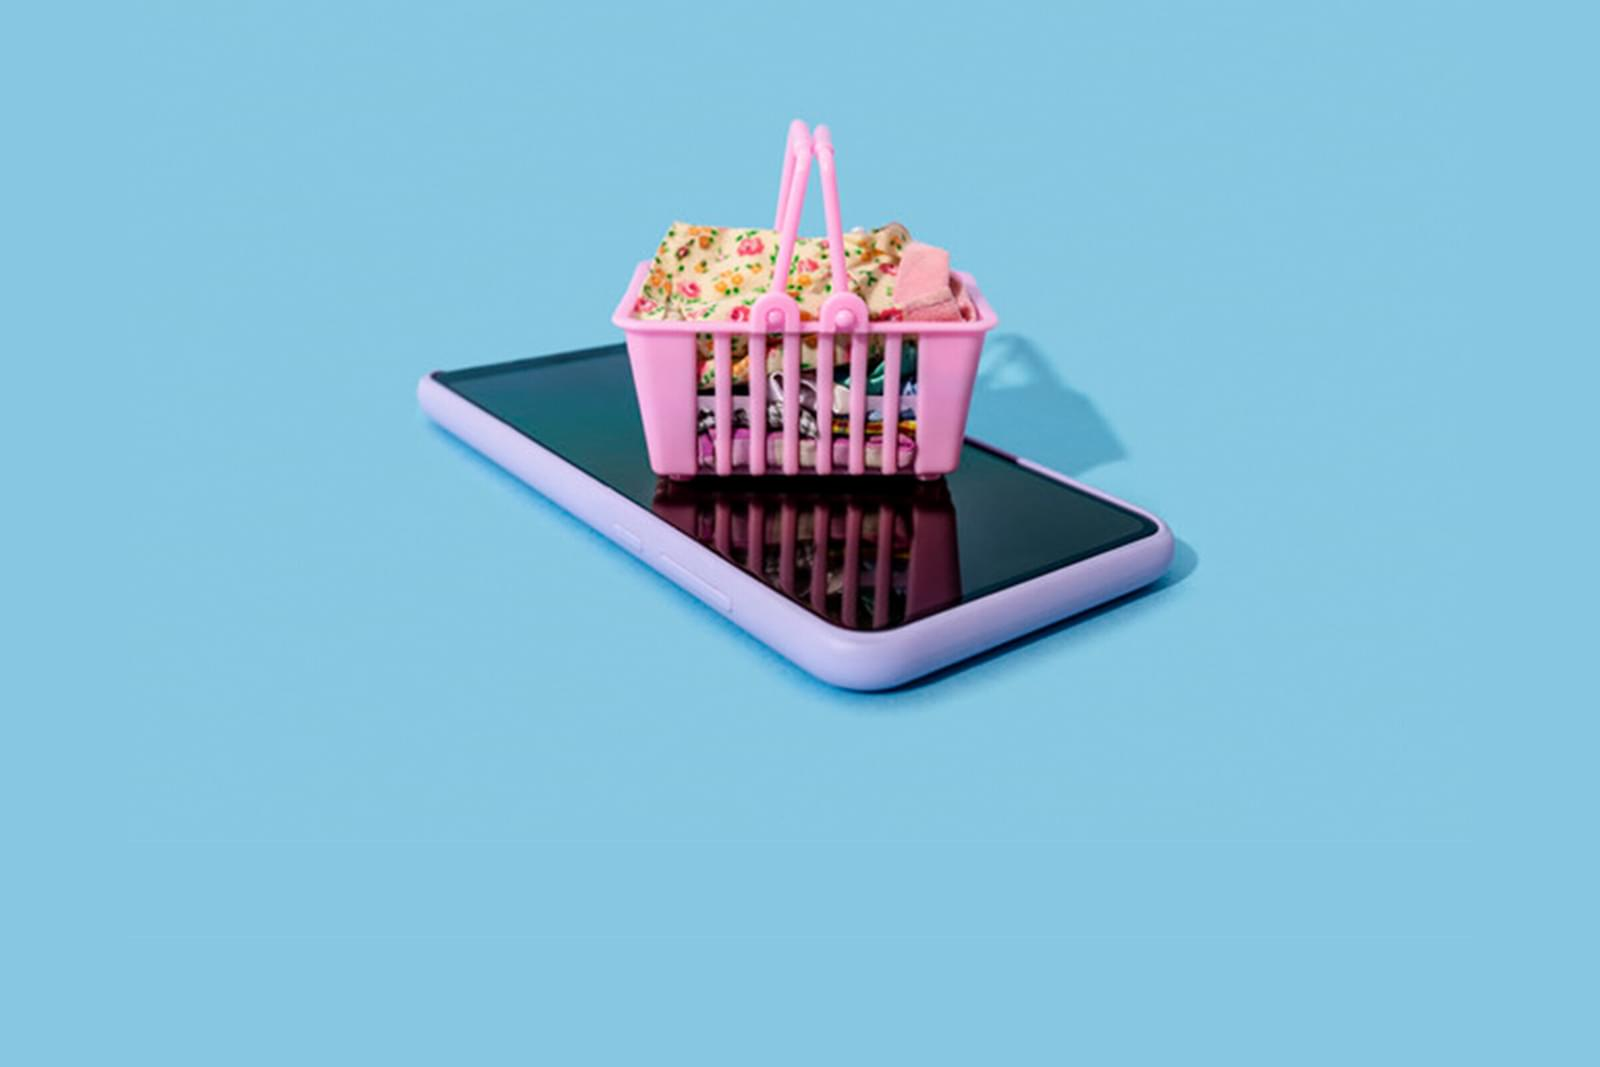 a small shopping basket on top of a mobile phone